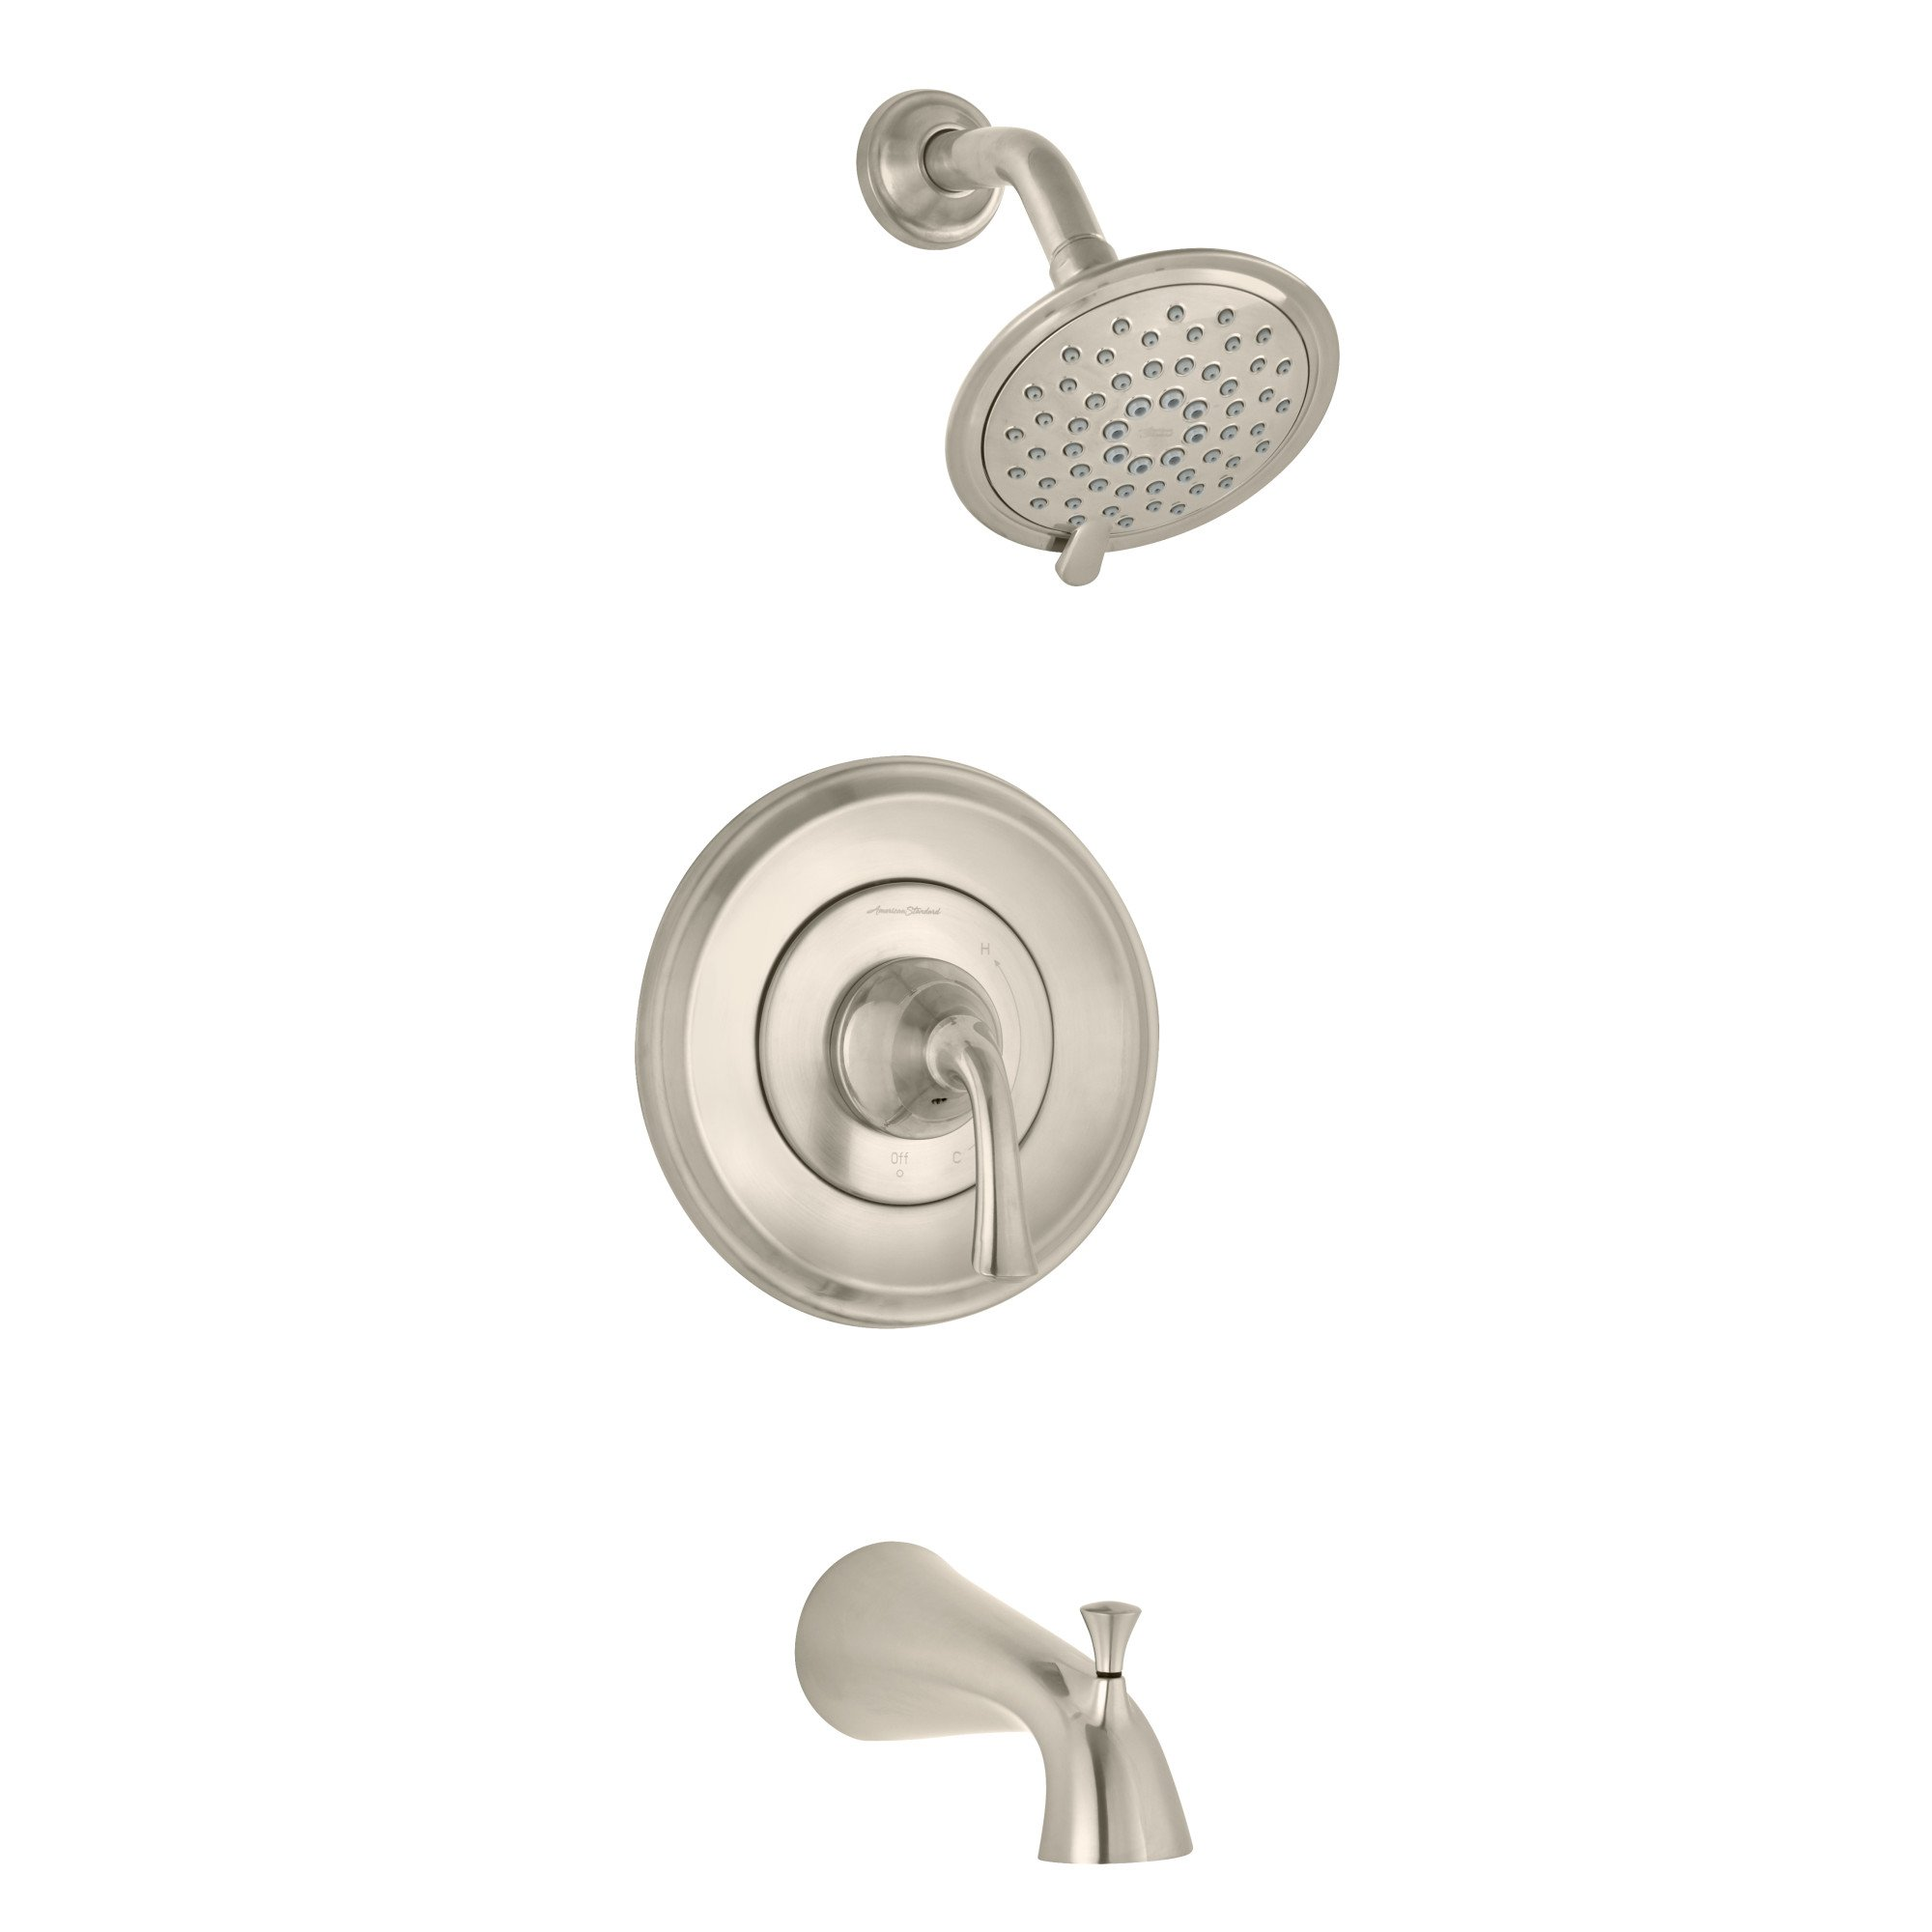 American Standard T106502.295 Romantic Patience PB Bath/Shower Trim BN, Brushed Nickel by American Standard